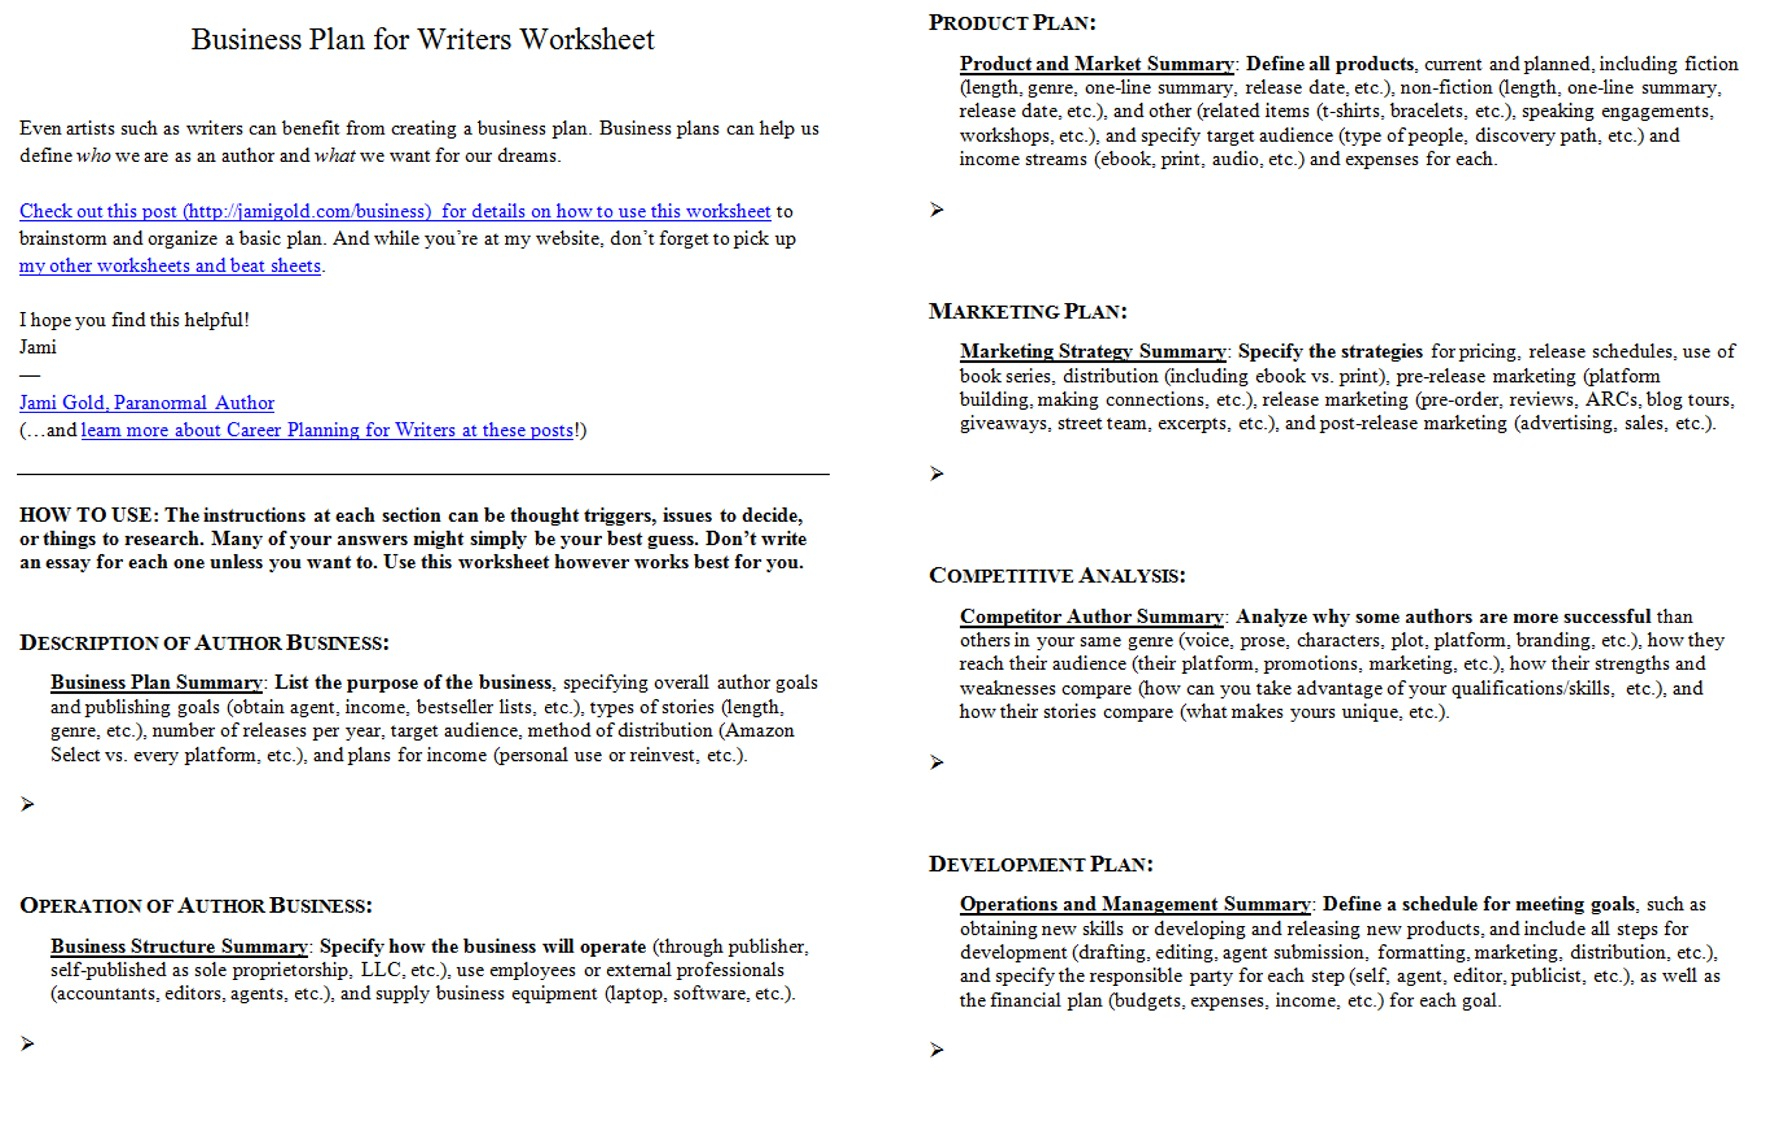 Weirdmailus  Picturesque Worksheets For Writers  Jami Gold Paranormal Author With Heavenly Screen Shot Of Both Pages Of The Business Plan For Writers Worksheet With Lovely Free Science Worksheets For Th Grade Also Free Printable Graph Worksheets In Addition Budget Worksheet Examples And The Scarlet Letter Worksheets As Well As Px Worksheet Pdf Additionally World Teachers Press Worksheets From Jamigoldcom With Weirdmailus  Heavenly Worksheets For Writers  Jami Gold Paranormal Author With Lovely Screen Shot Of Both Pages Of The Business Plan For Writers Worksheet And Picturesque Free Science Worksheets For Th Grade Also Free Printable Graph Worksheets In Addition Budget Worksheet Examples From Jamigoldcom